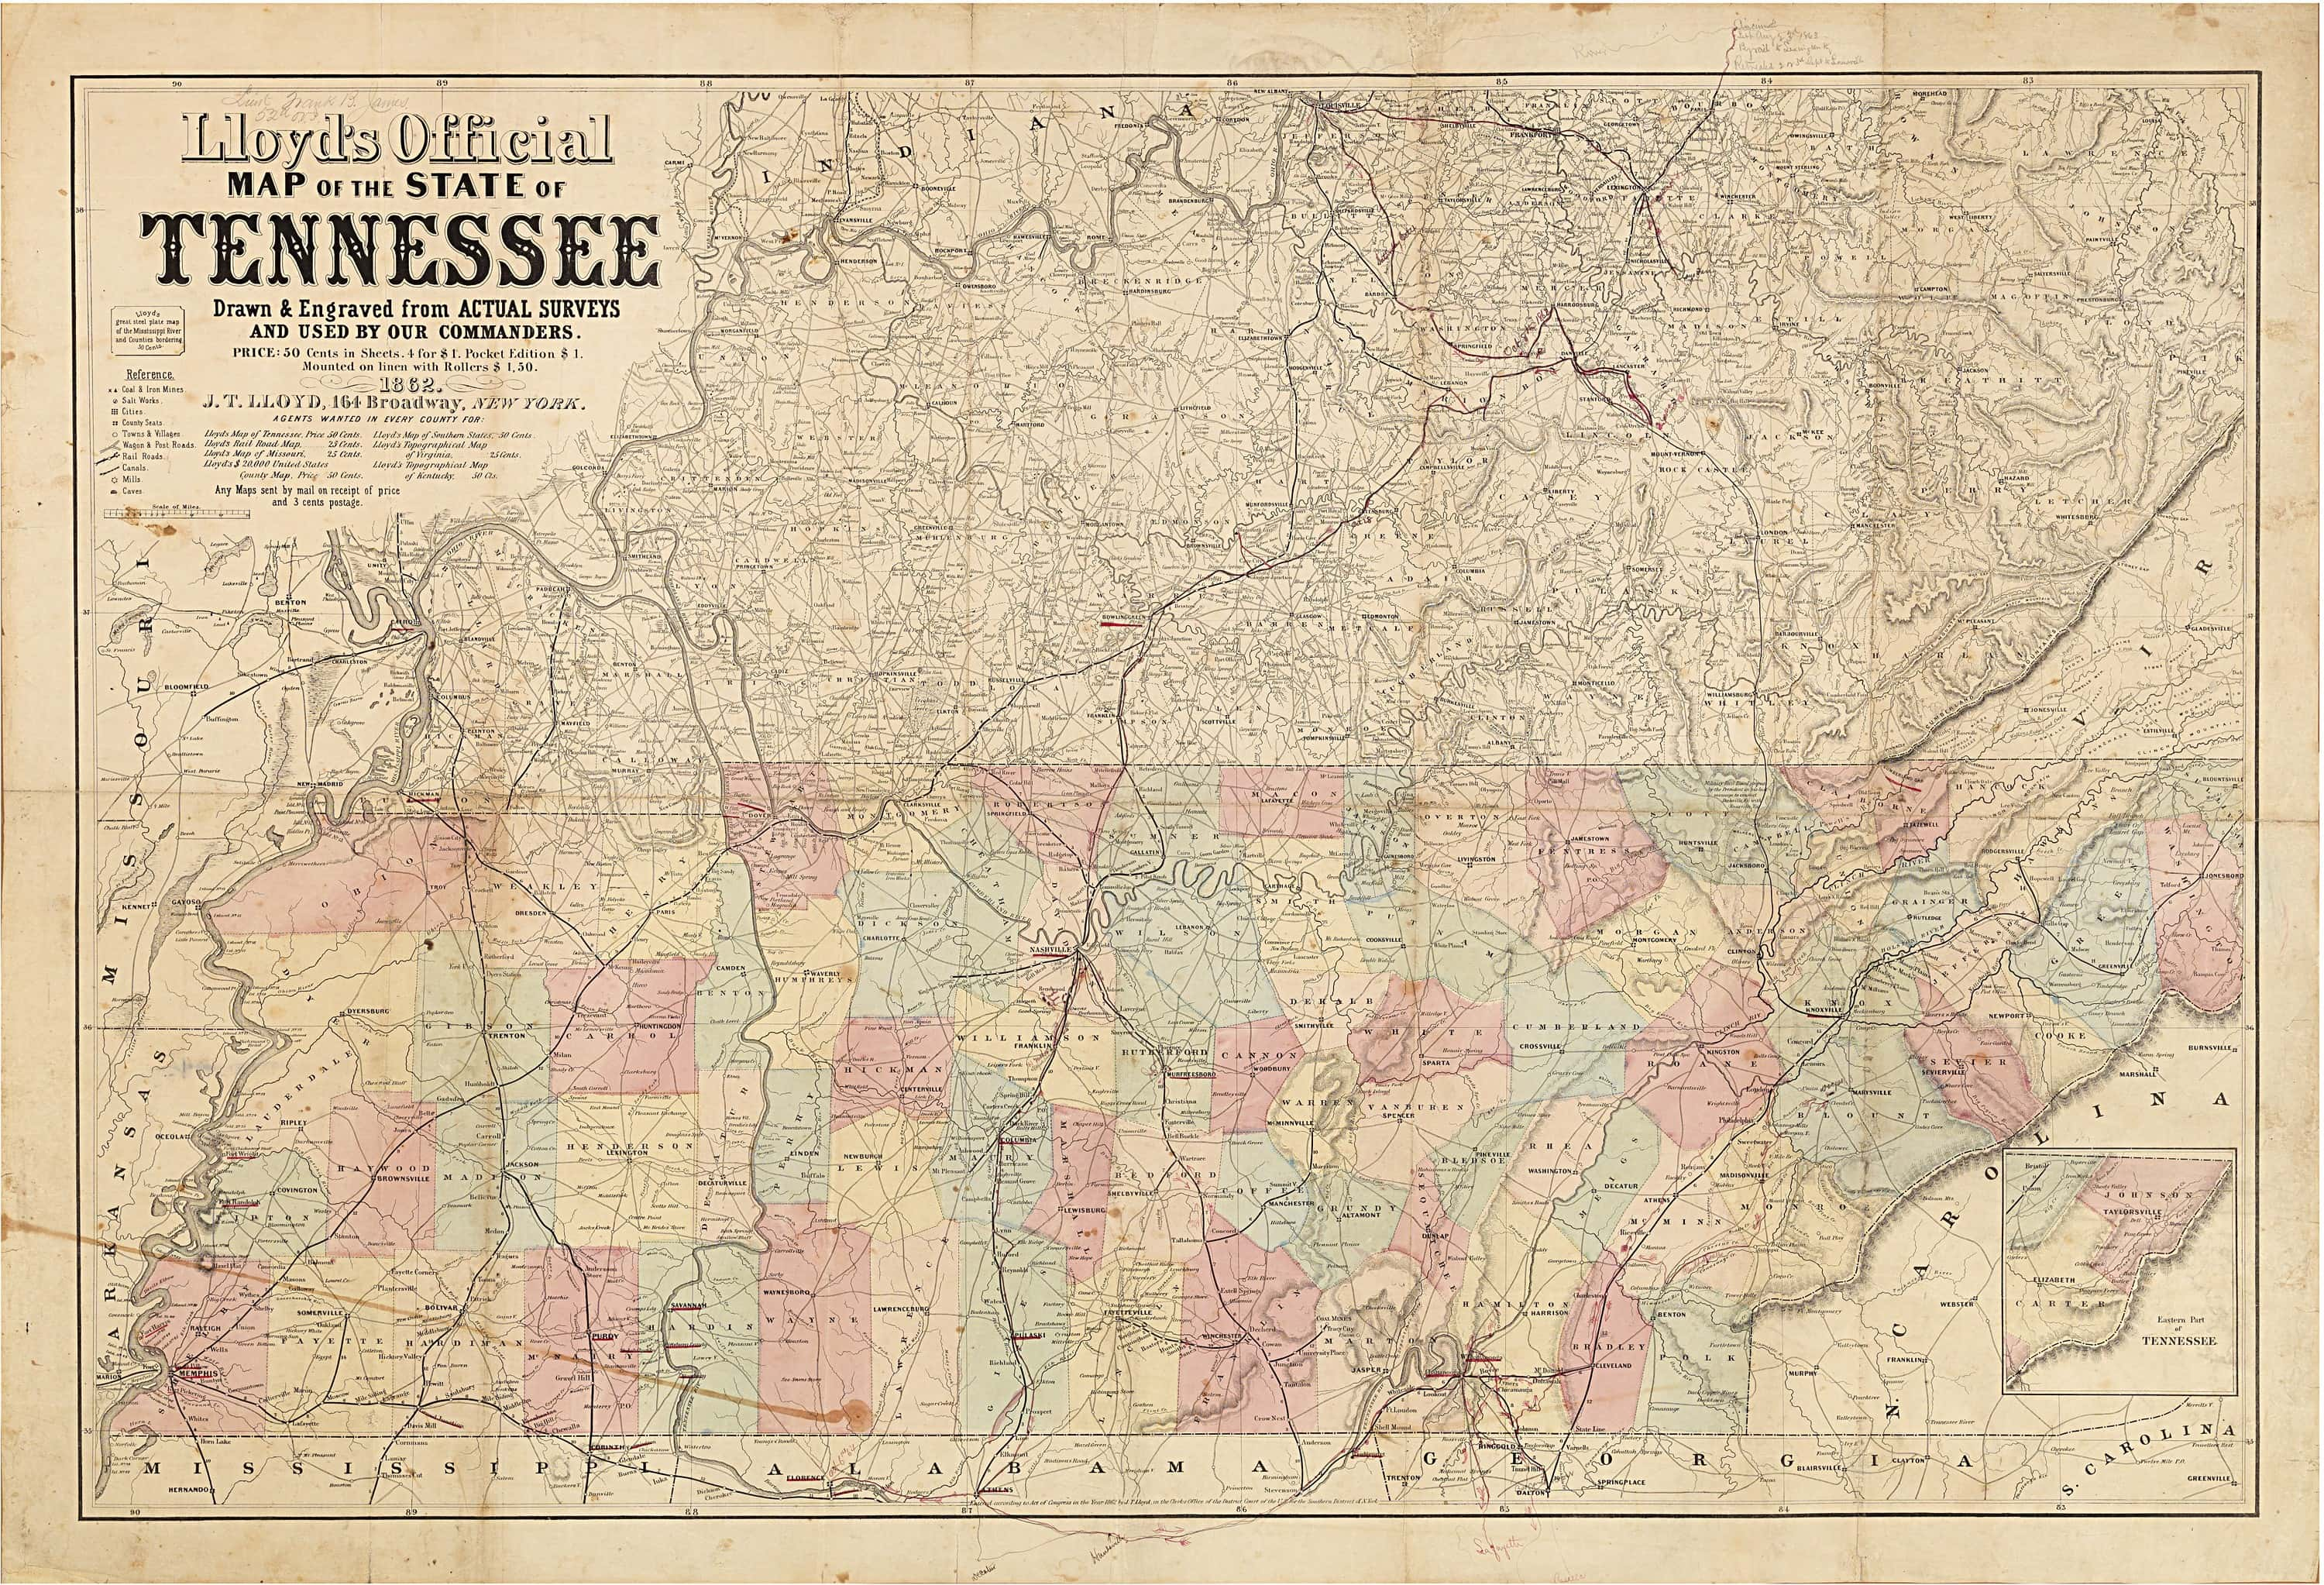 Important Civil Warera Maps Of Tennessee And Georgia